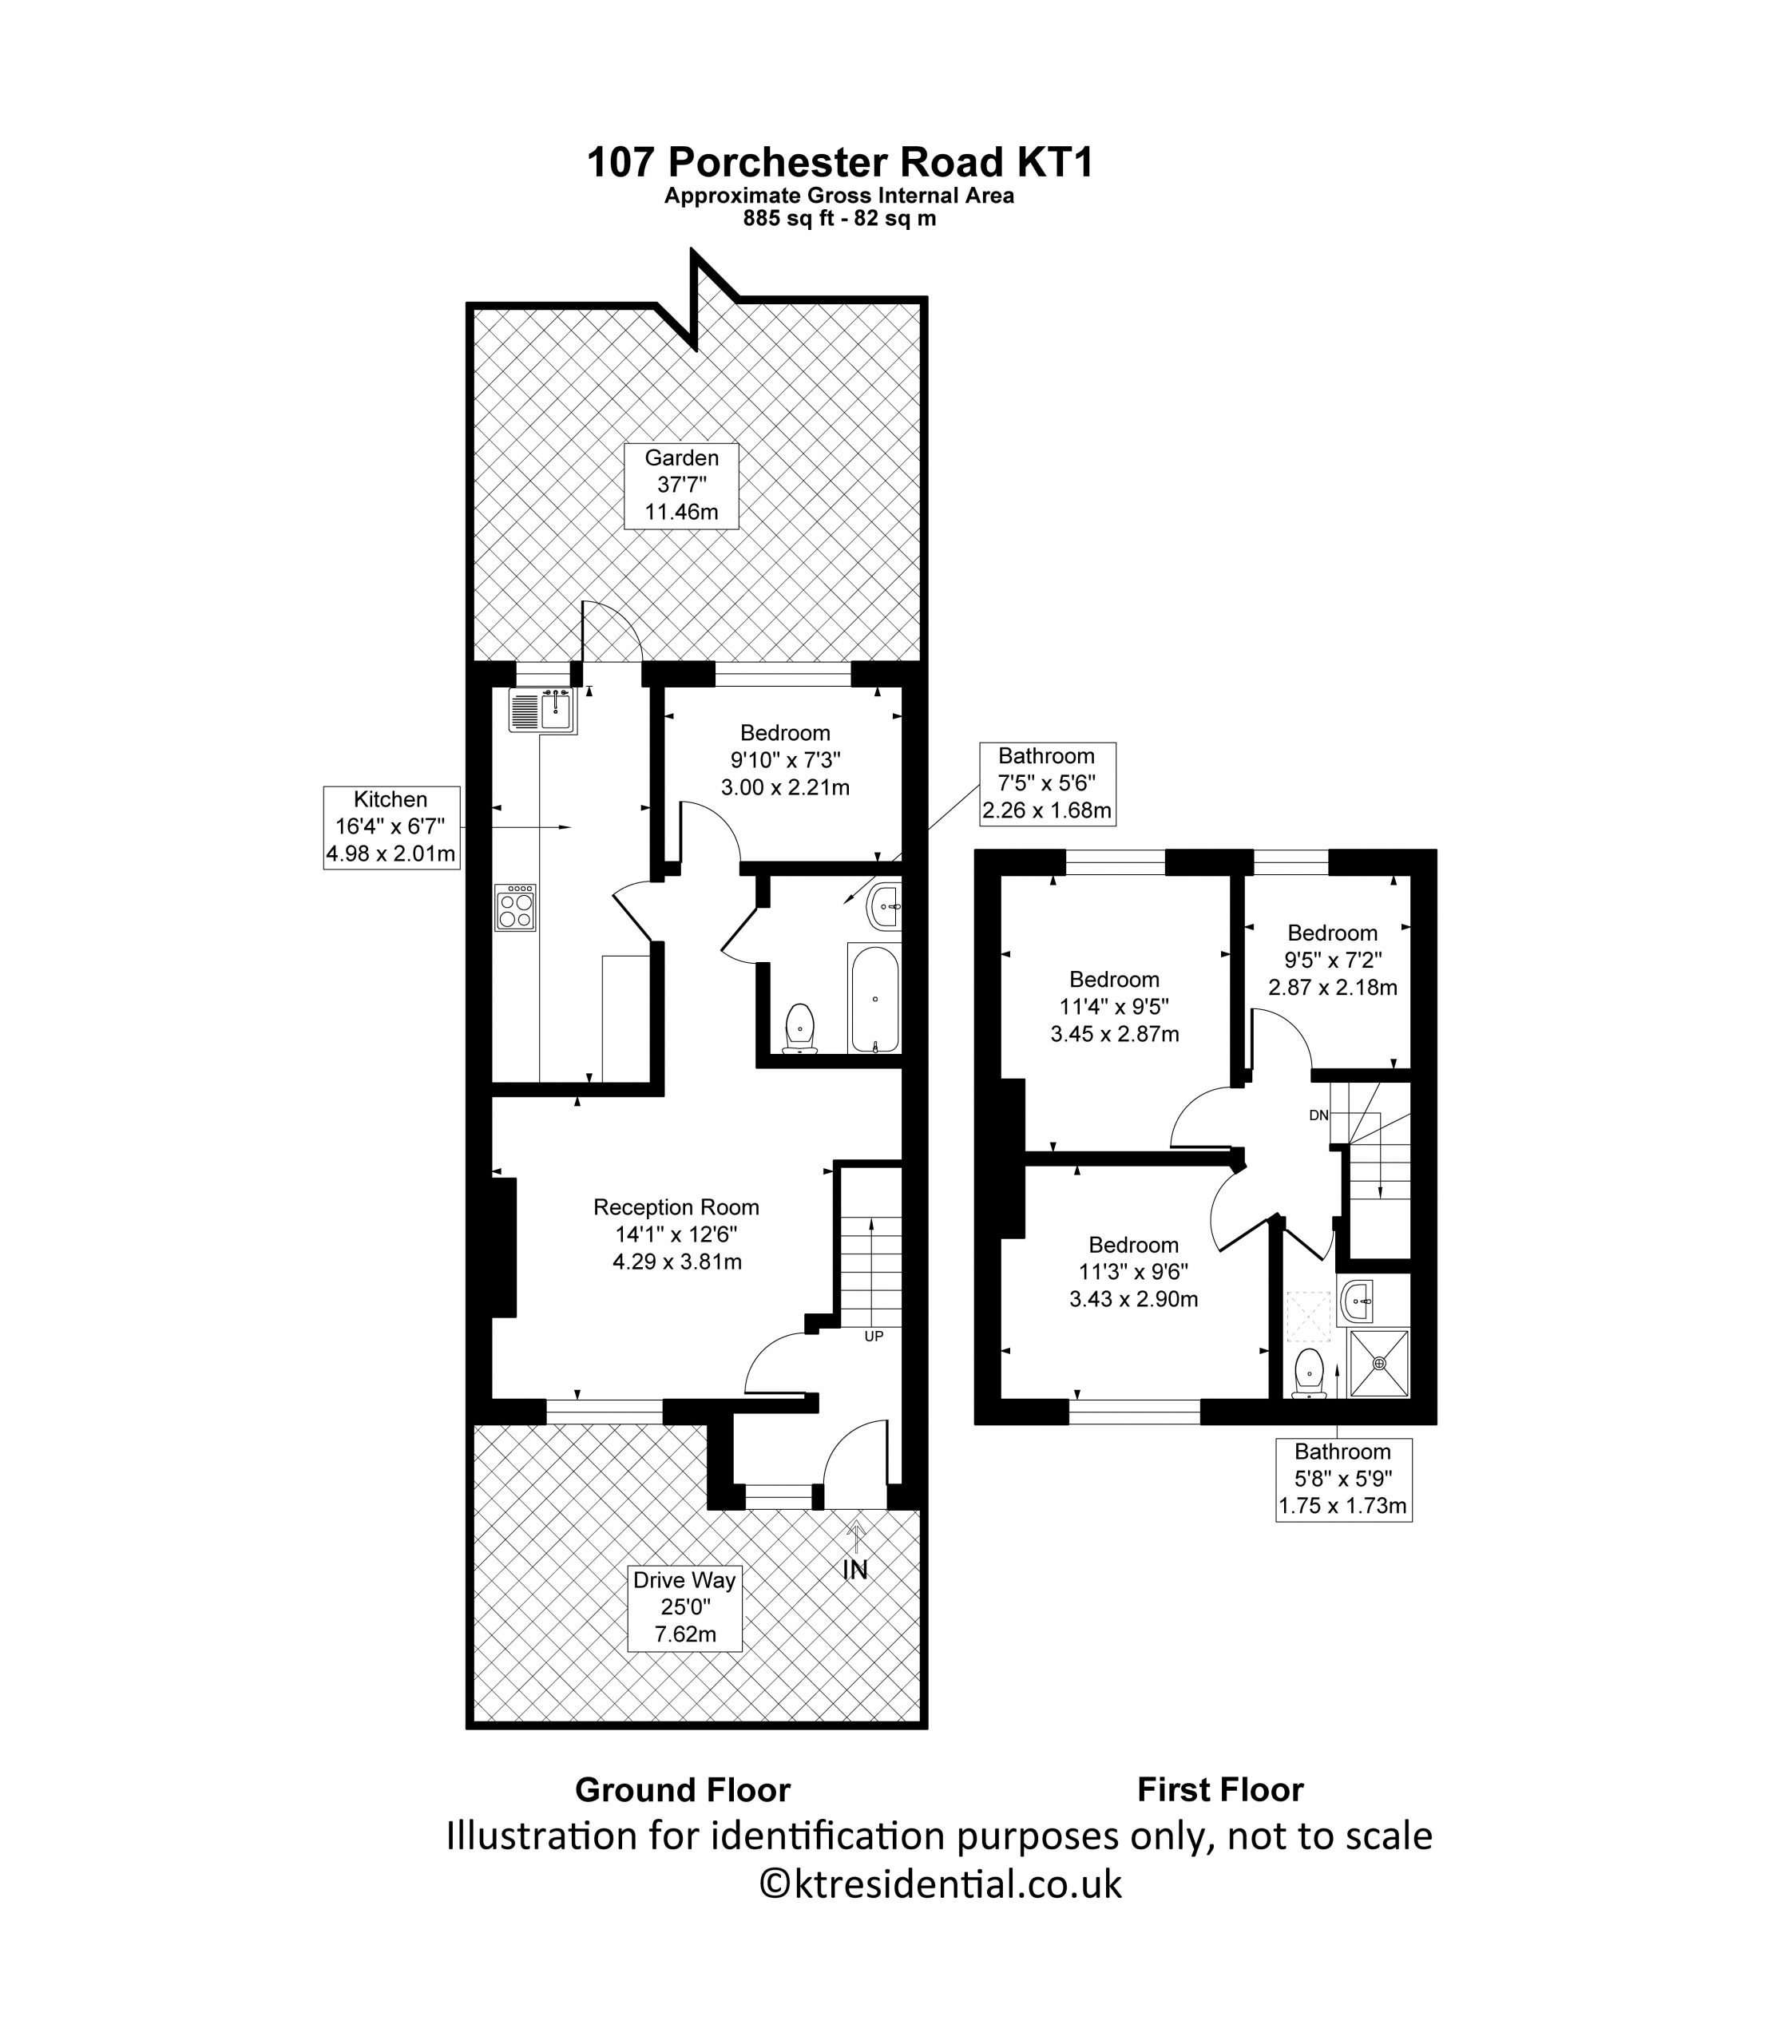 Porchester Road 107 – Floor Plans